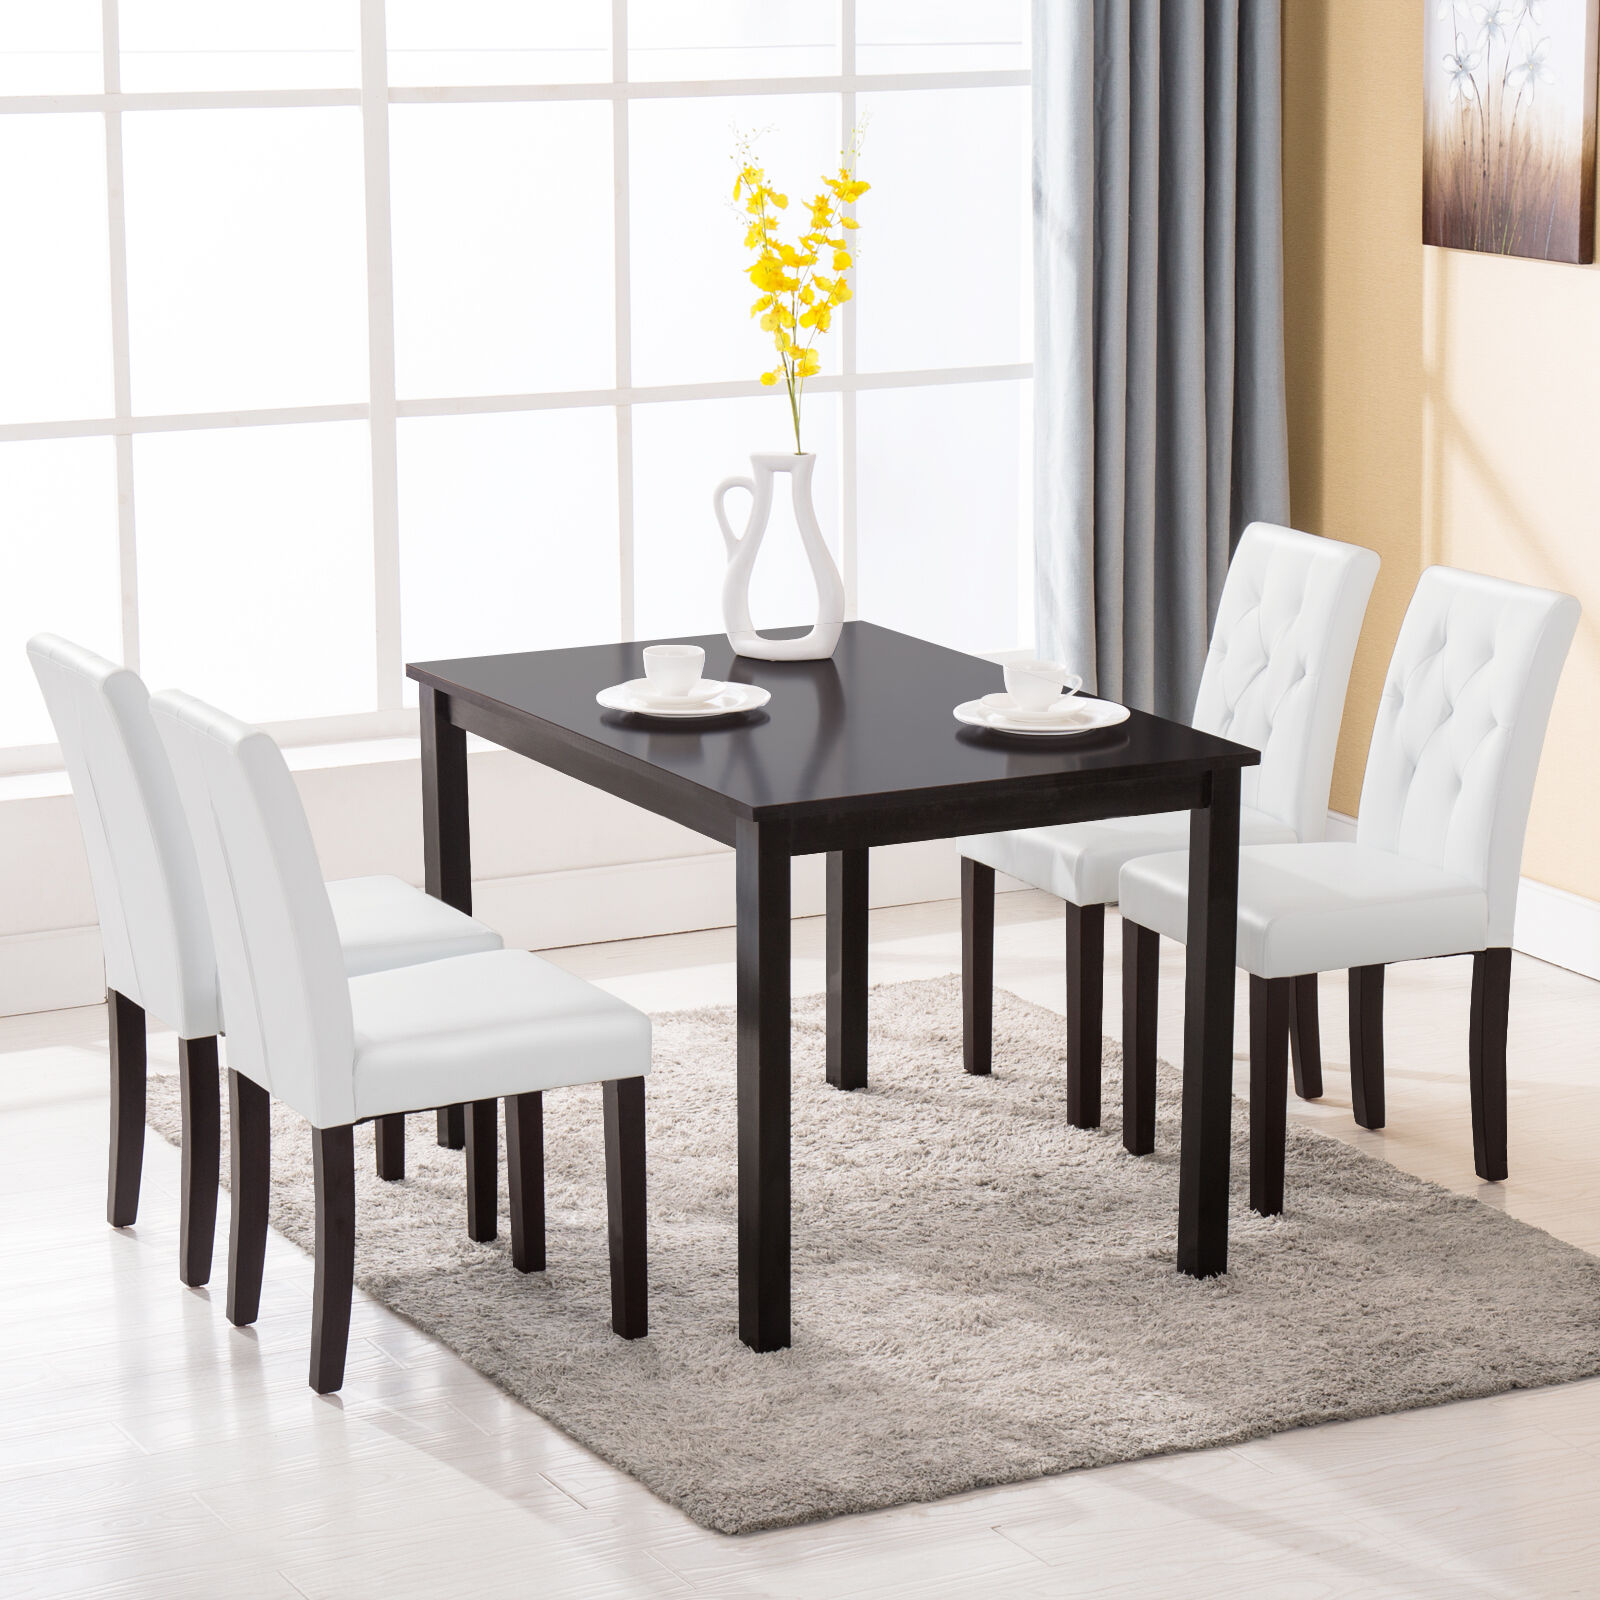 Kitchen Dining Room Chairs: 5 Piece Dining Table Set 4 Chairs Room Kitchen Dinette